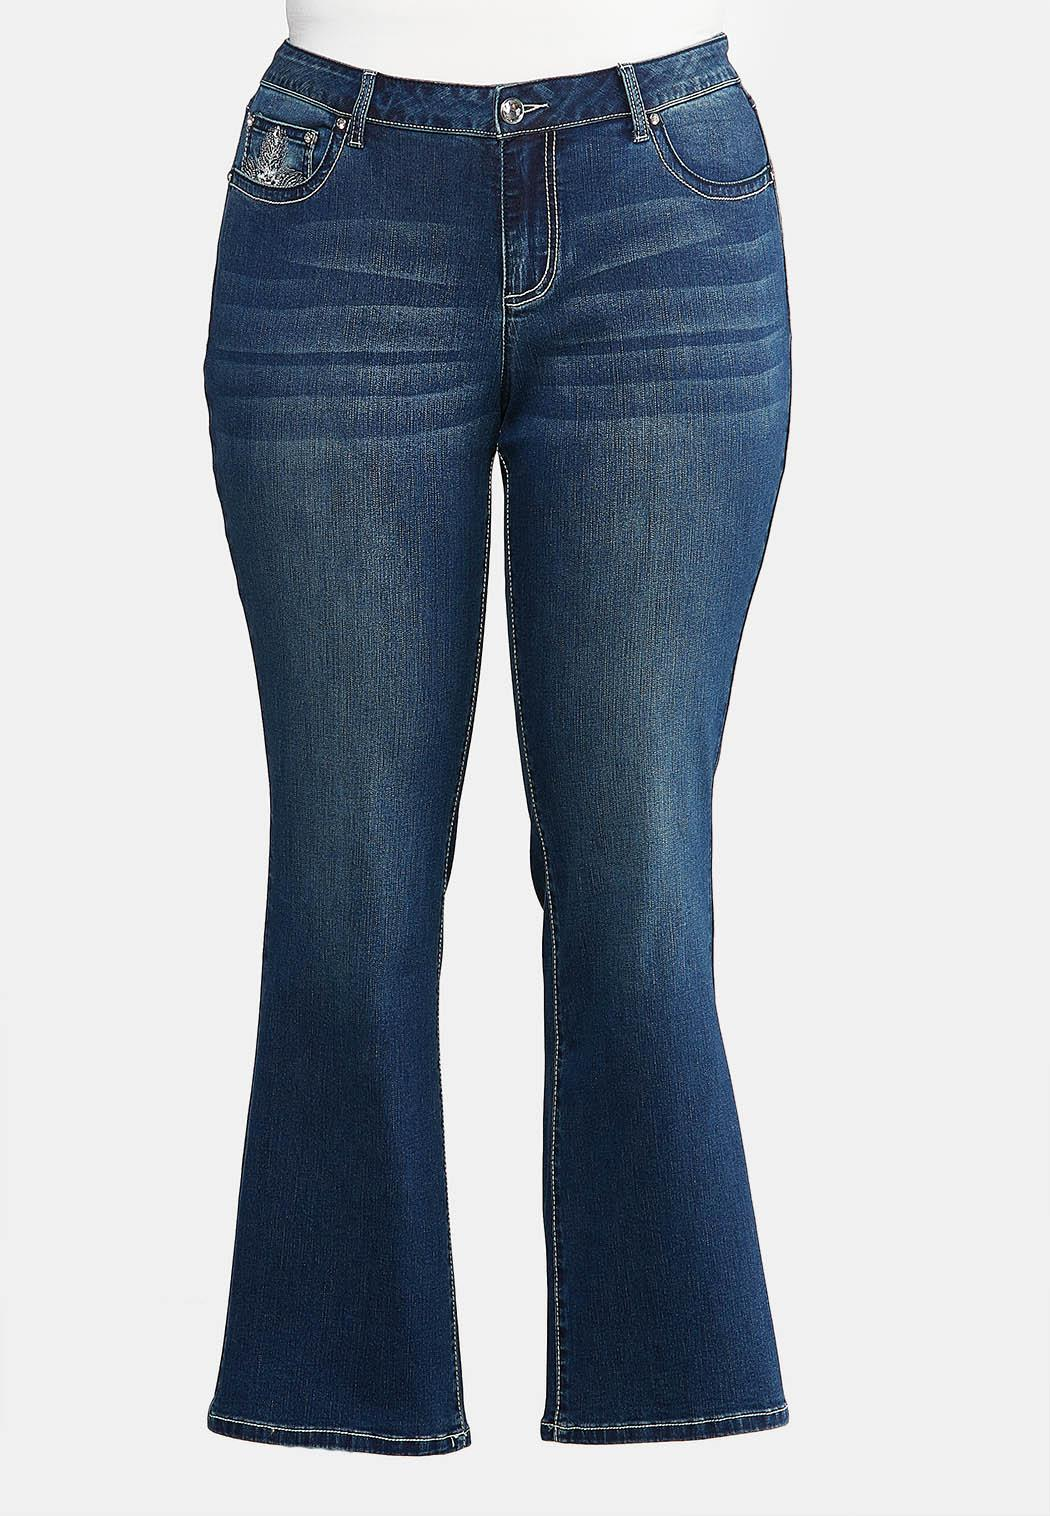 Plus Size Bootcut Bling Feather Jeans (Item #43942788)